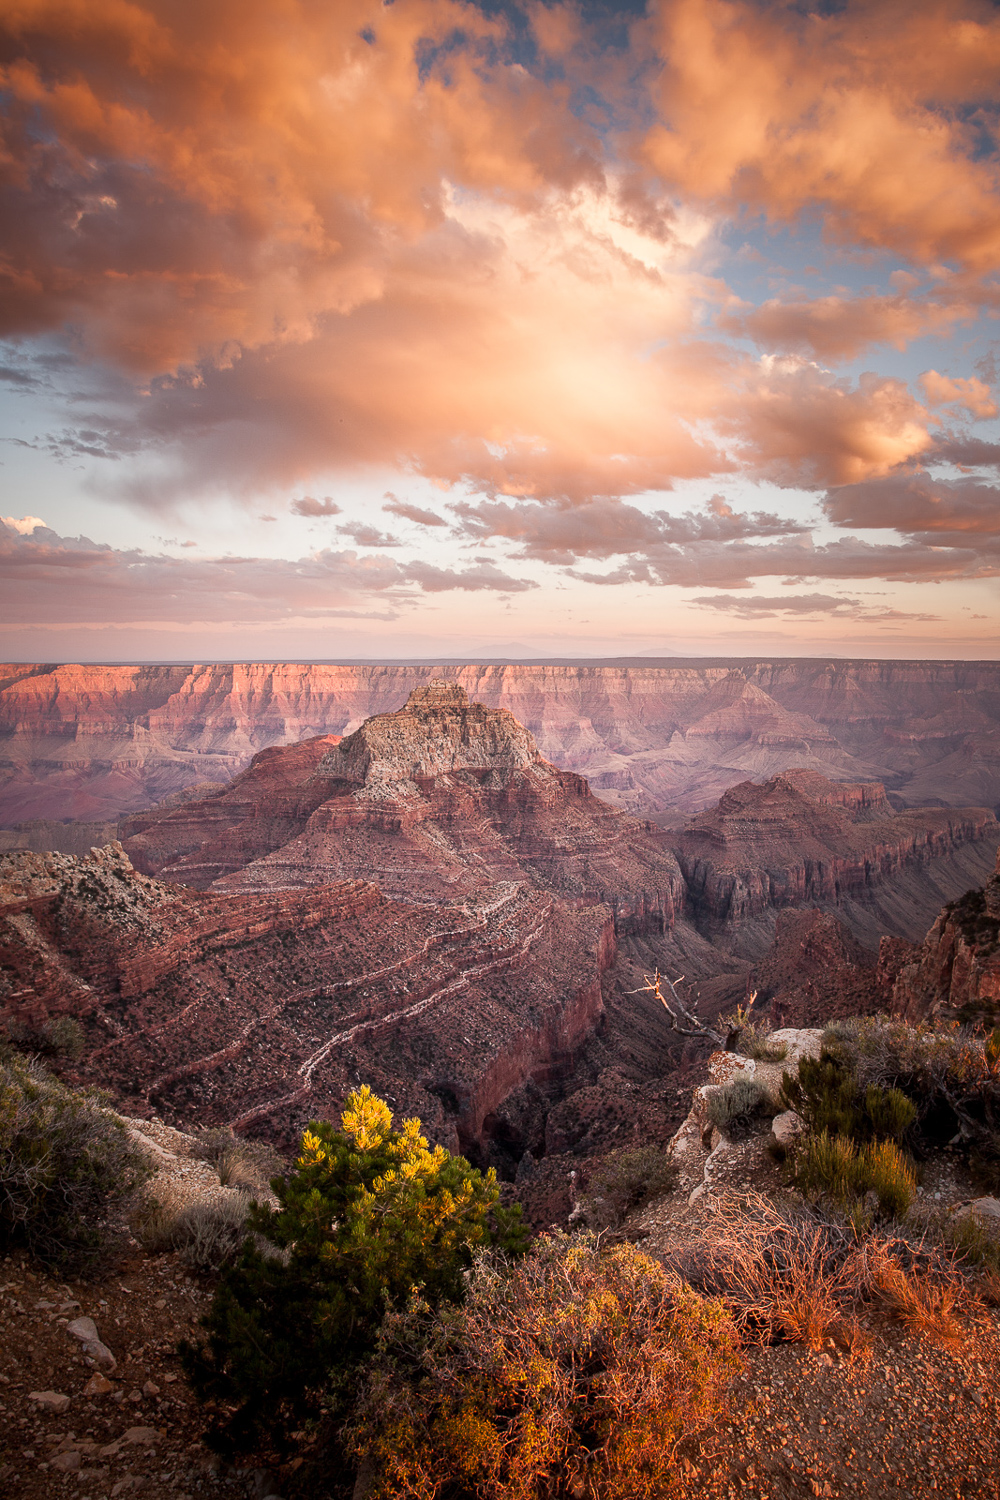 grant-longenbaugh-grand-canyon-16.jpg